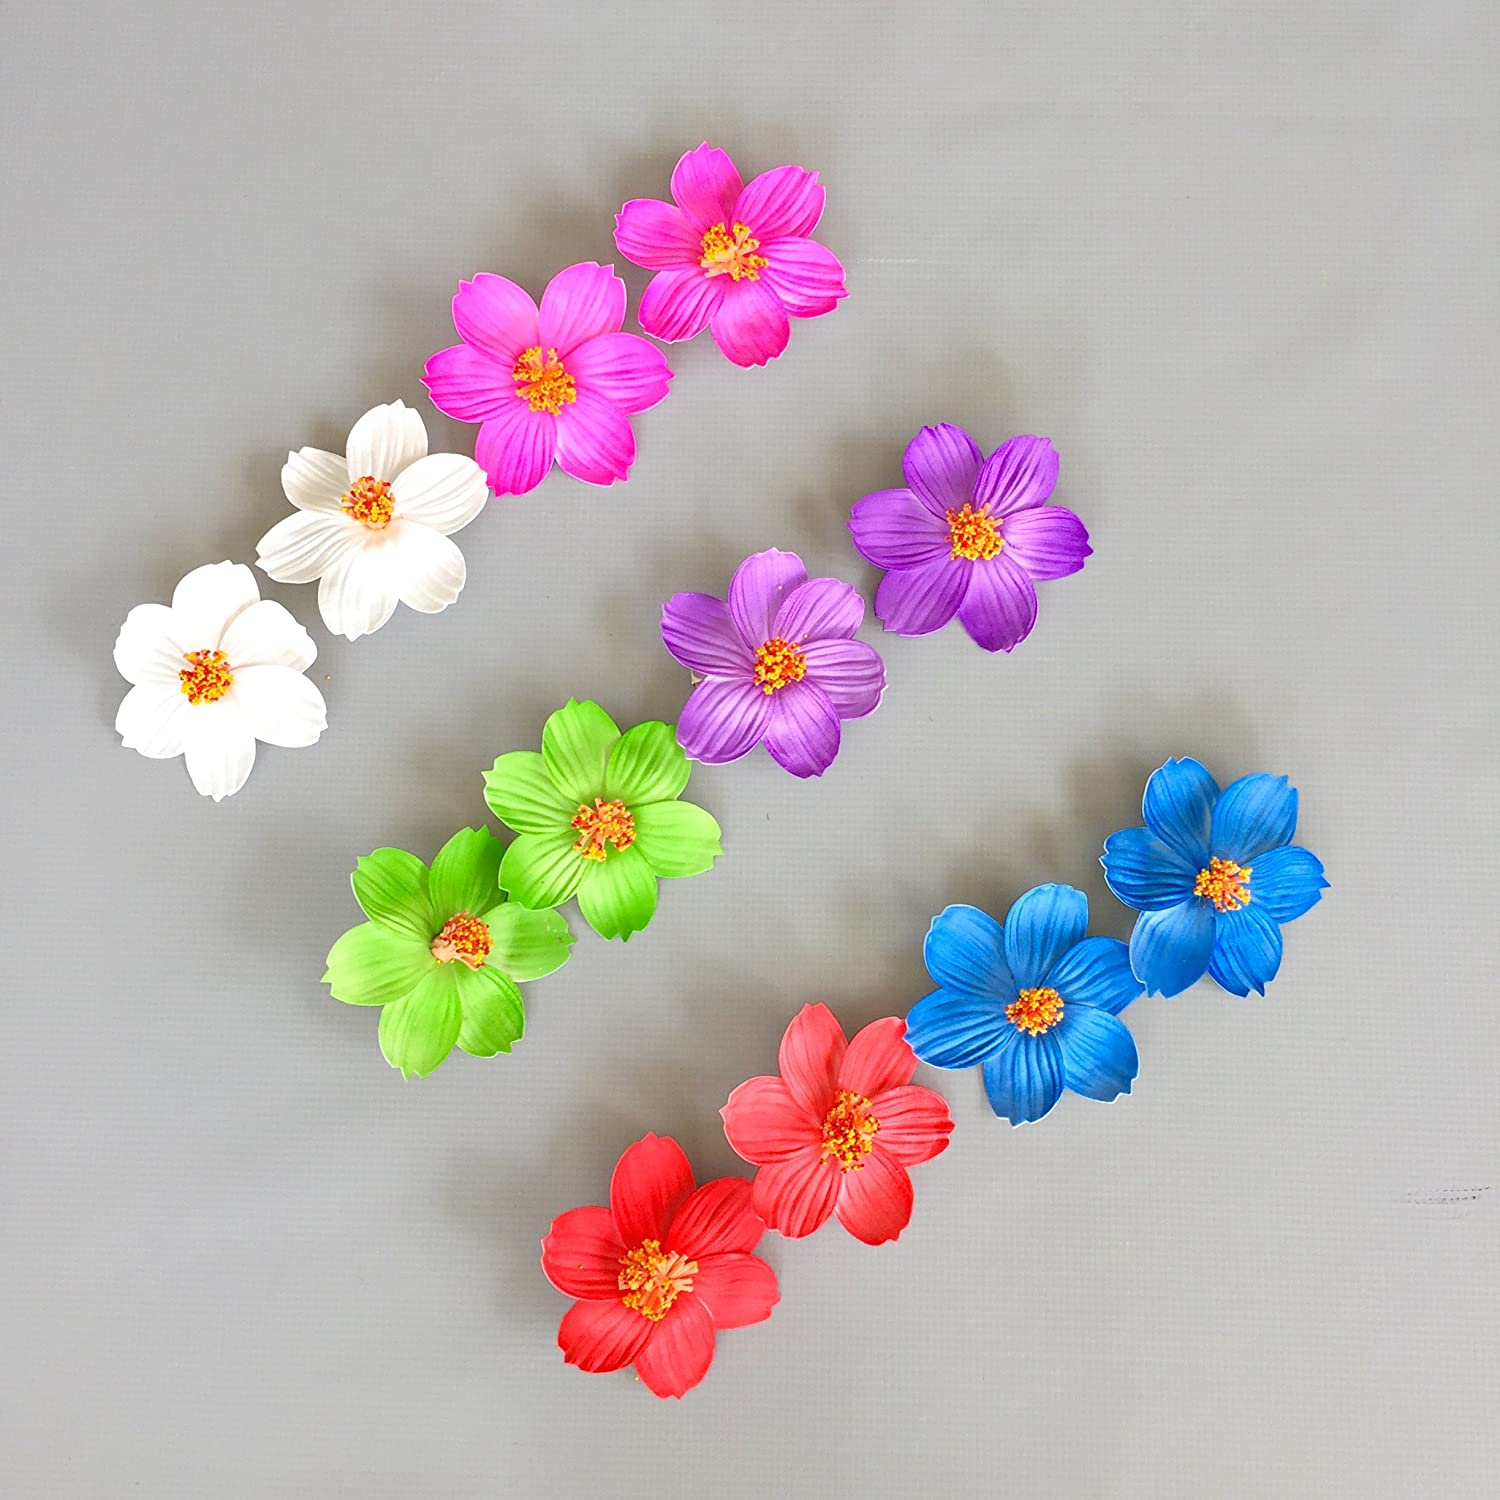 Amazon hawaiian hibiscus flower hair clips for luau party favor amazon hawaiian hibiscus flower hair clips for luau party favor hawaiian party decoration 12 pcs toys games izmirmasajfo